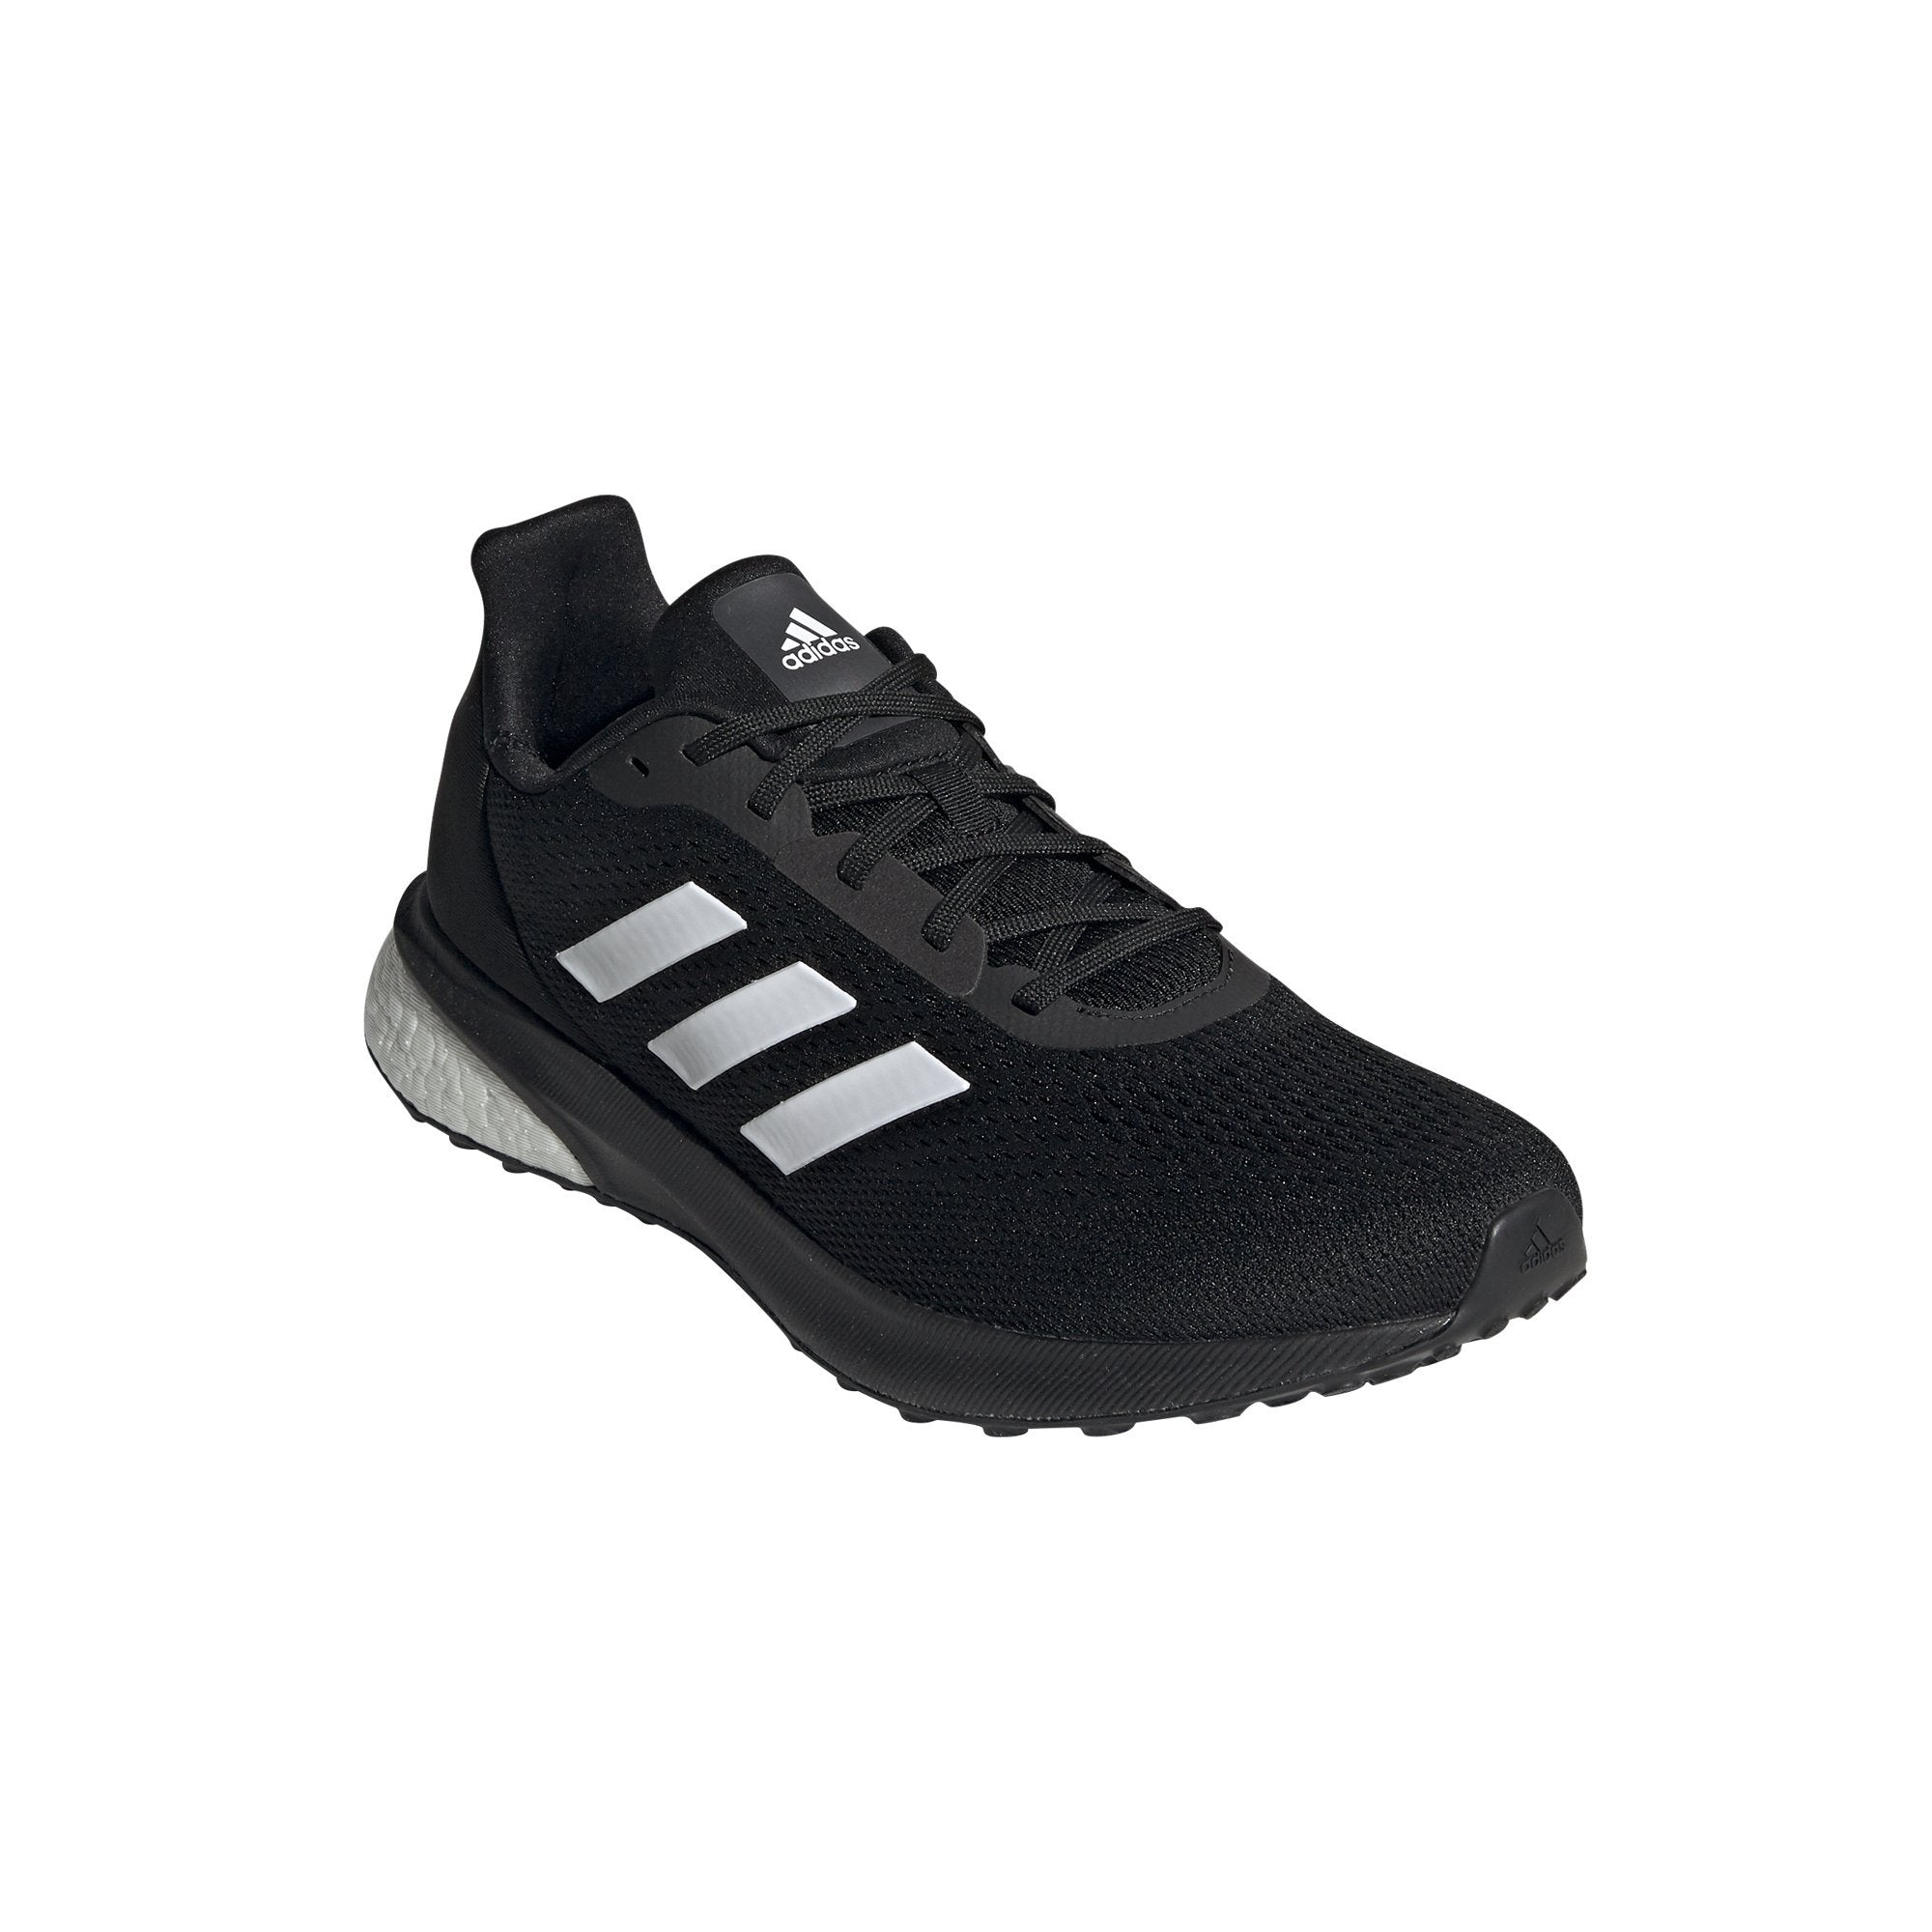 Adidas Mens Astrarun Shoes - Core Black/Ftwr White/Core Black SP-Footwear-Mens Adidas